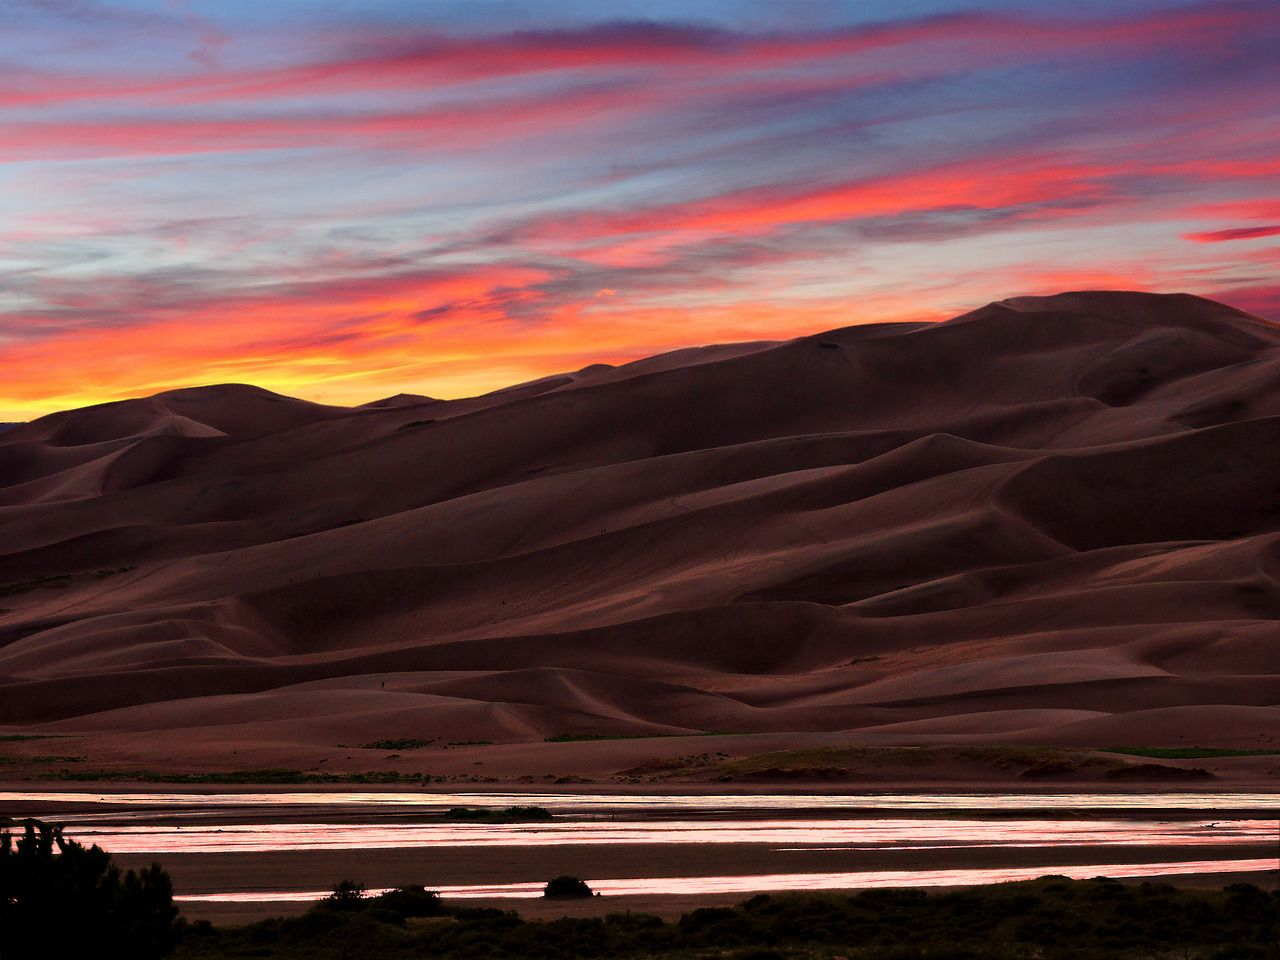 The sloping dunes and curving shadows at Great Sand Dunes